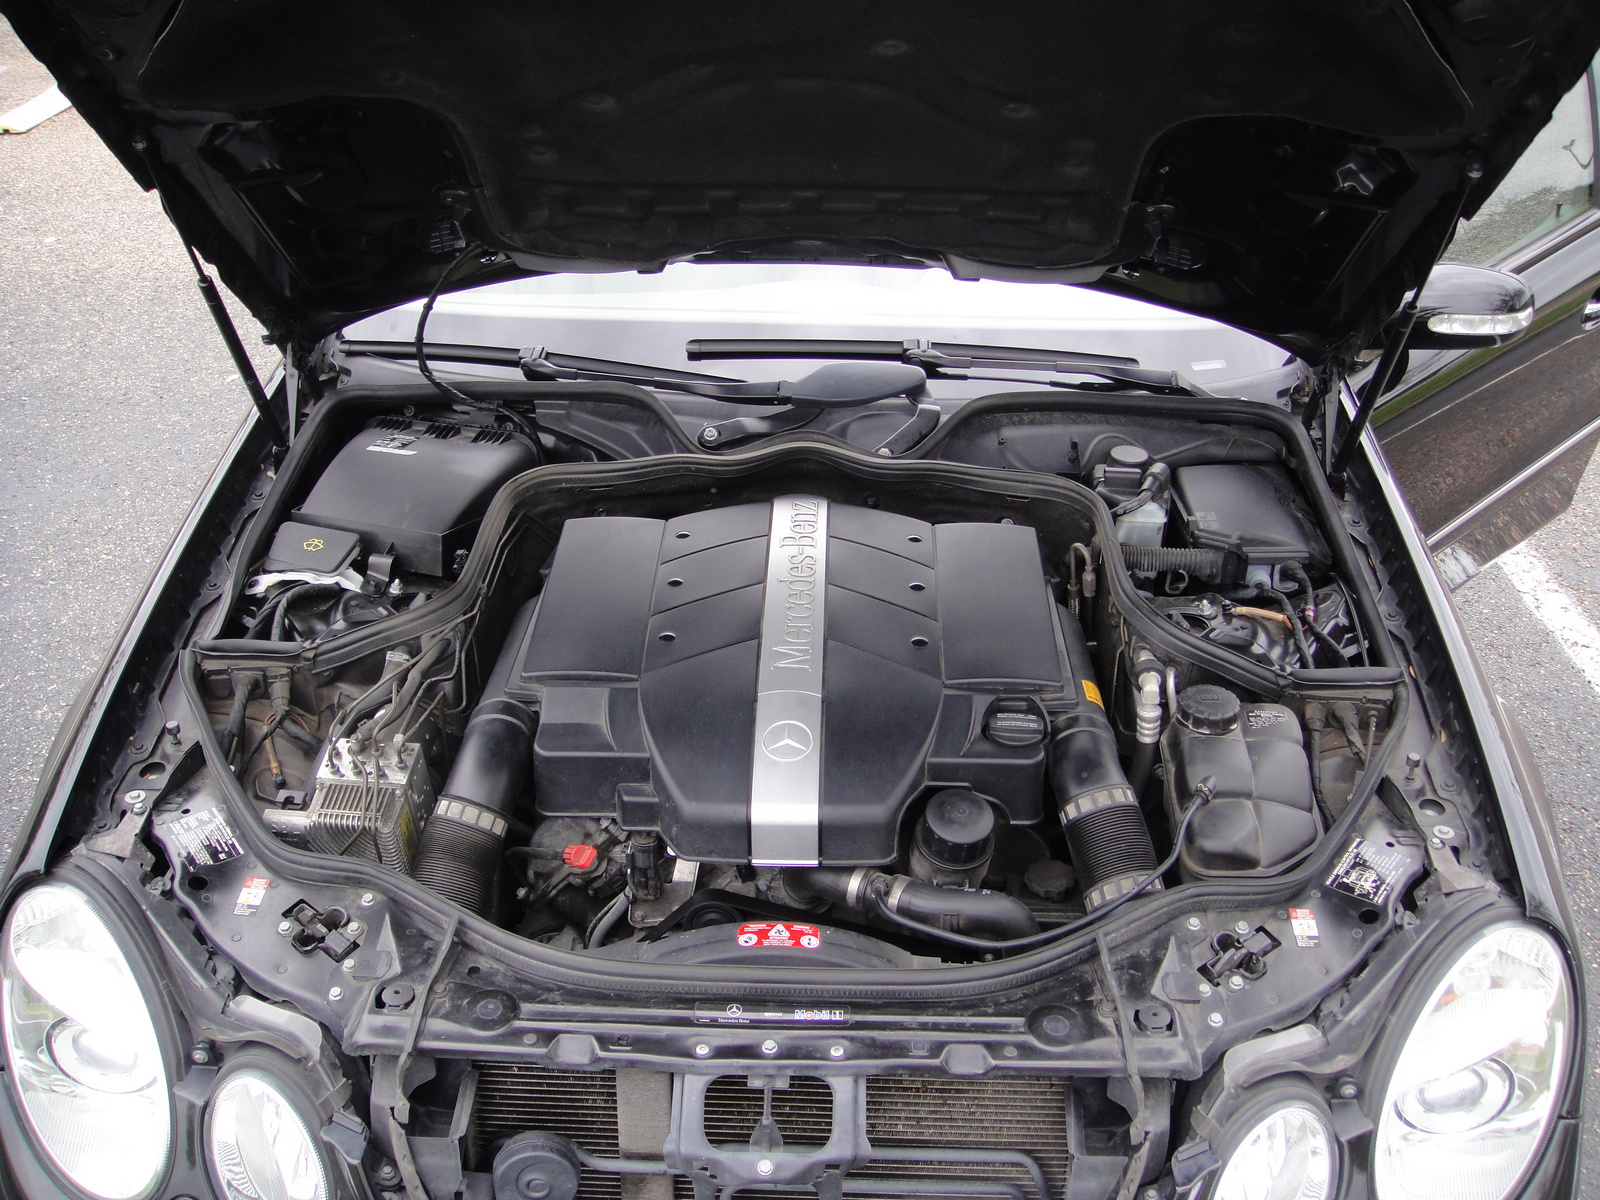 2004 mercedes e320 engine